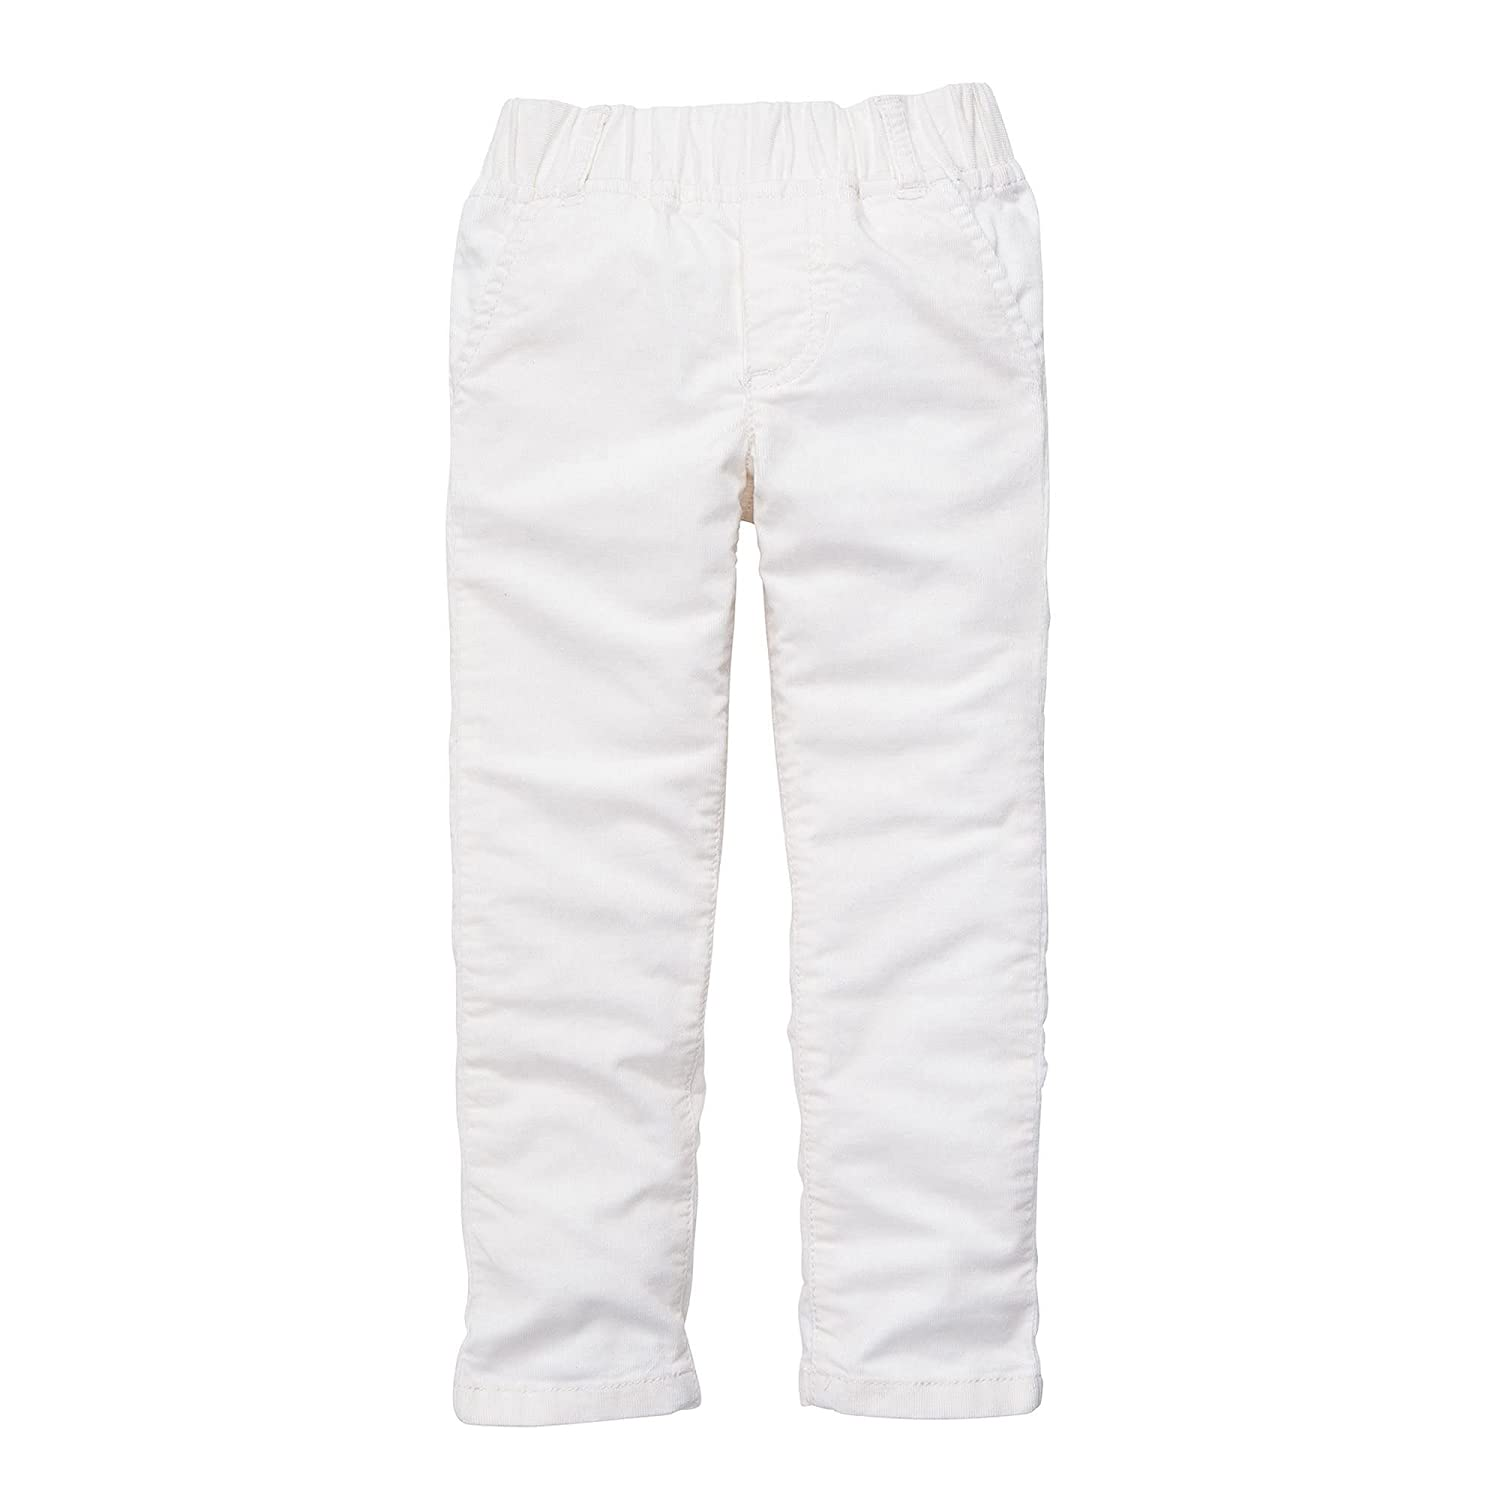 Carters Baby Girls Off-White Thin Corduroy Jeggings